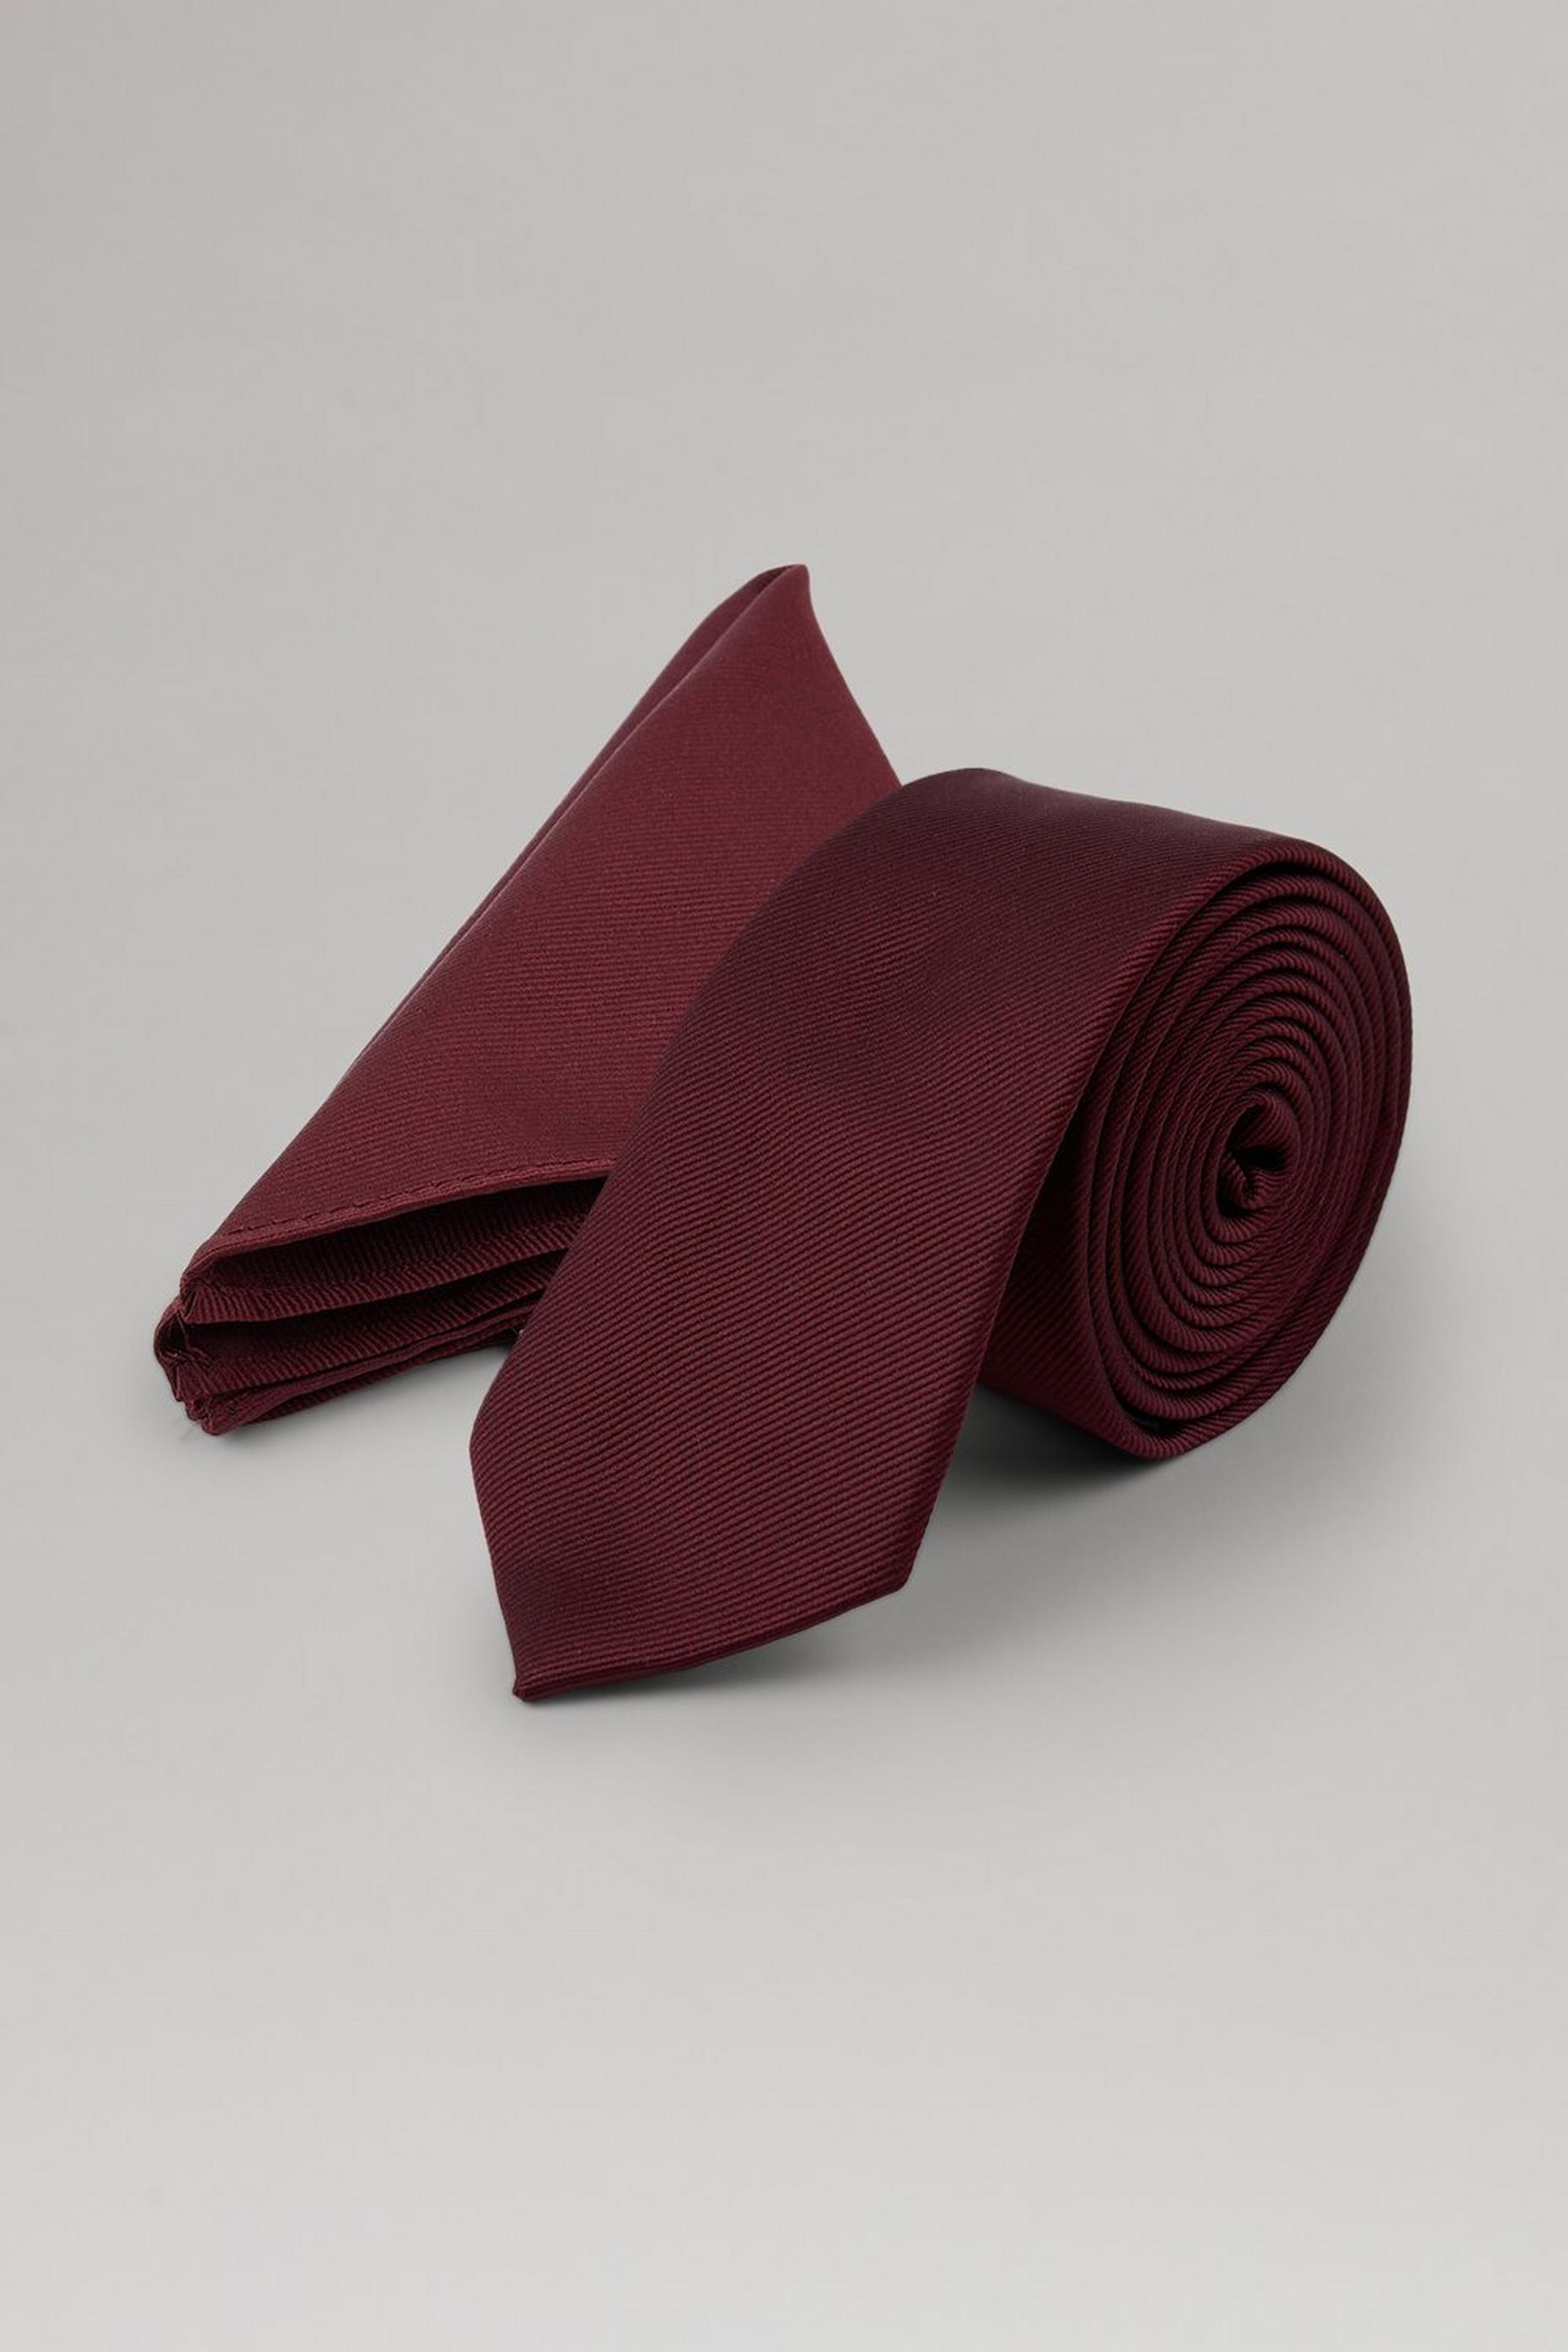 Dark Burgundy Tie, Pocket Square Set